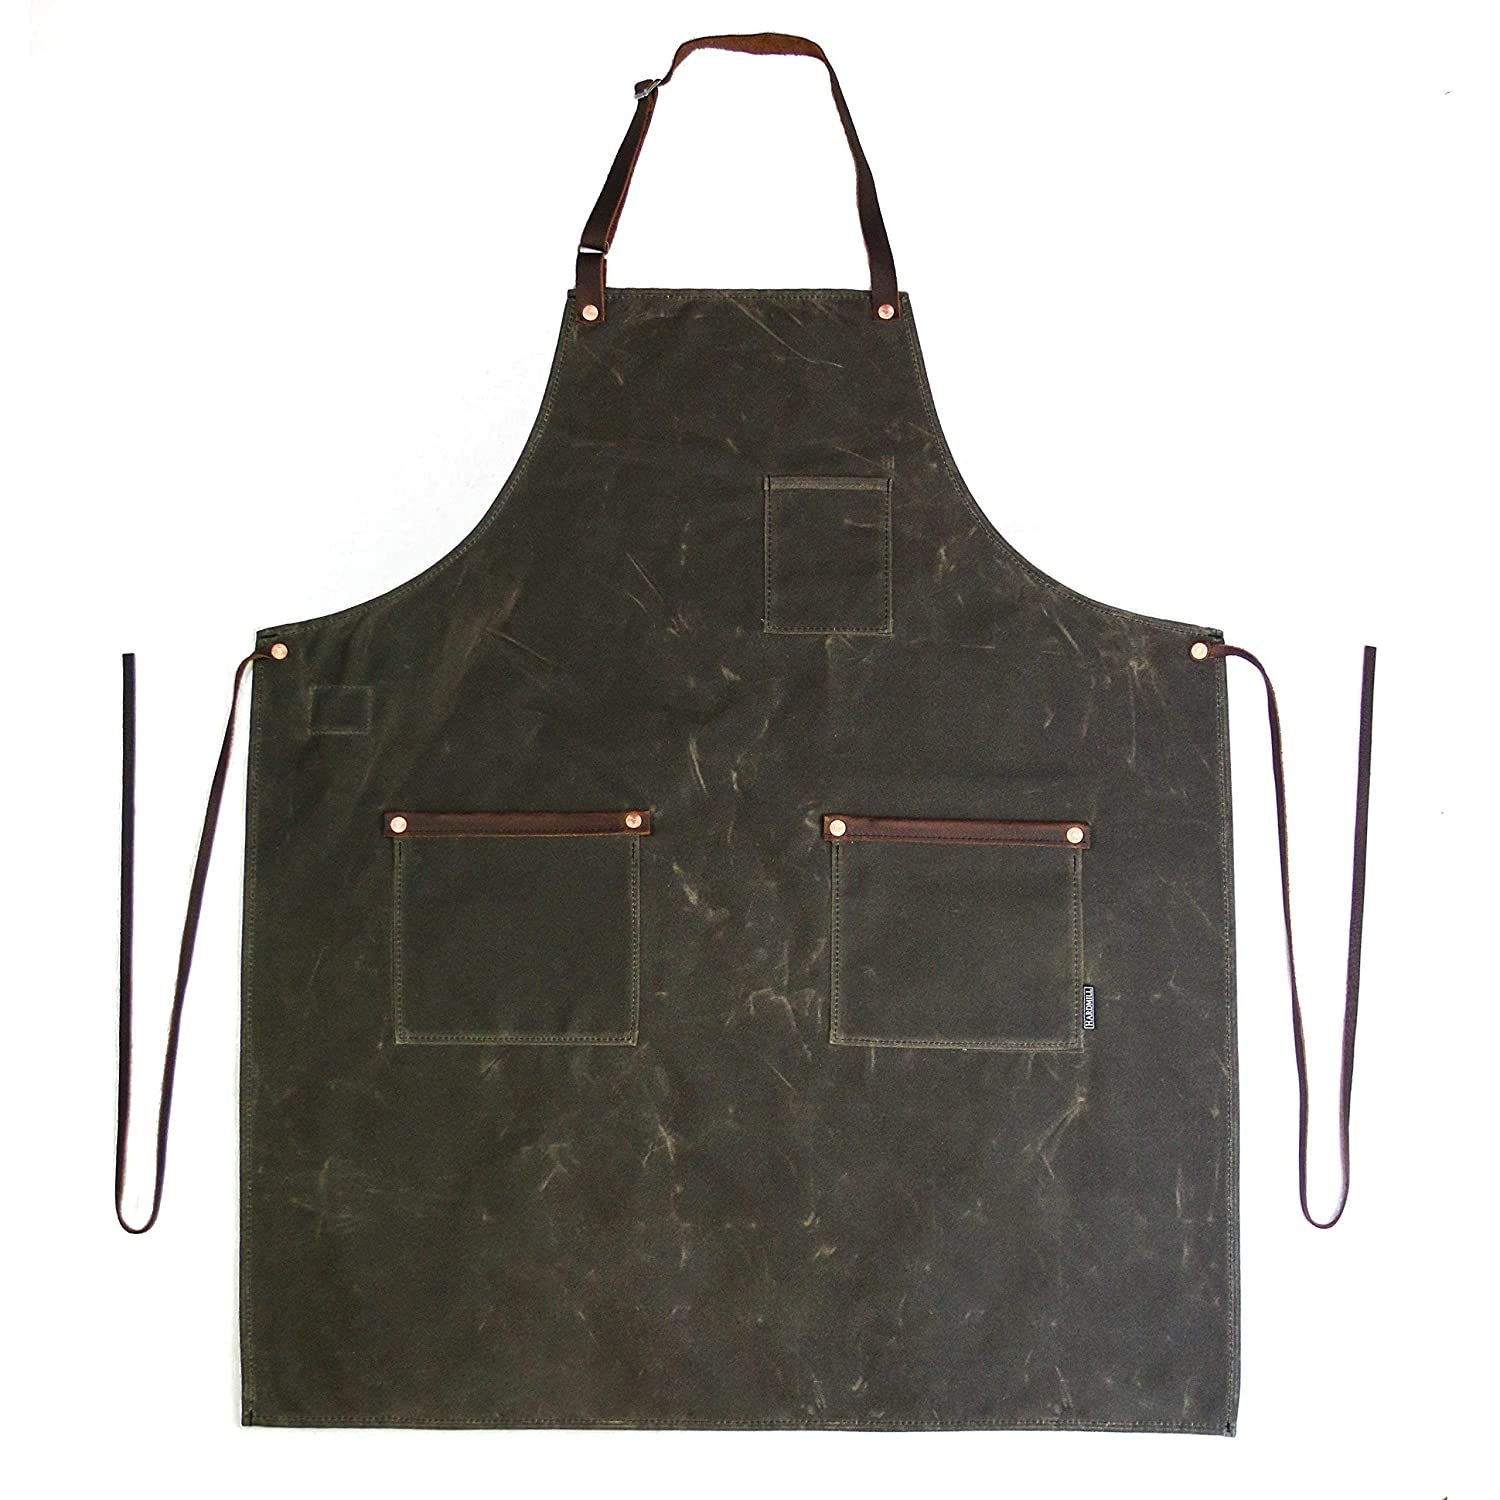 Industry Apron - lowest price Waxed Canvas in 2021 spring and summer new Dark USA Made Oak